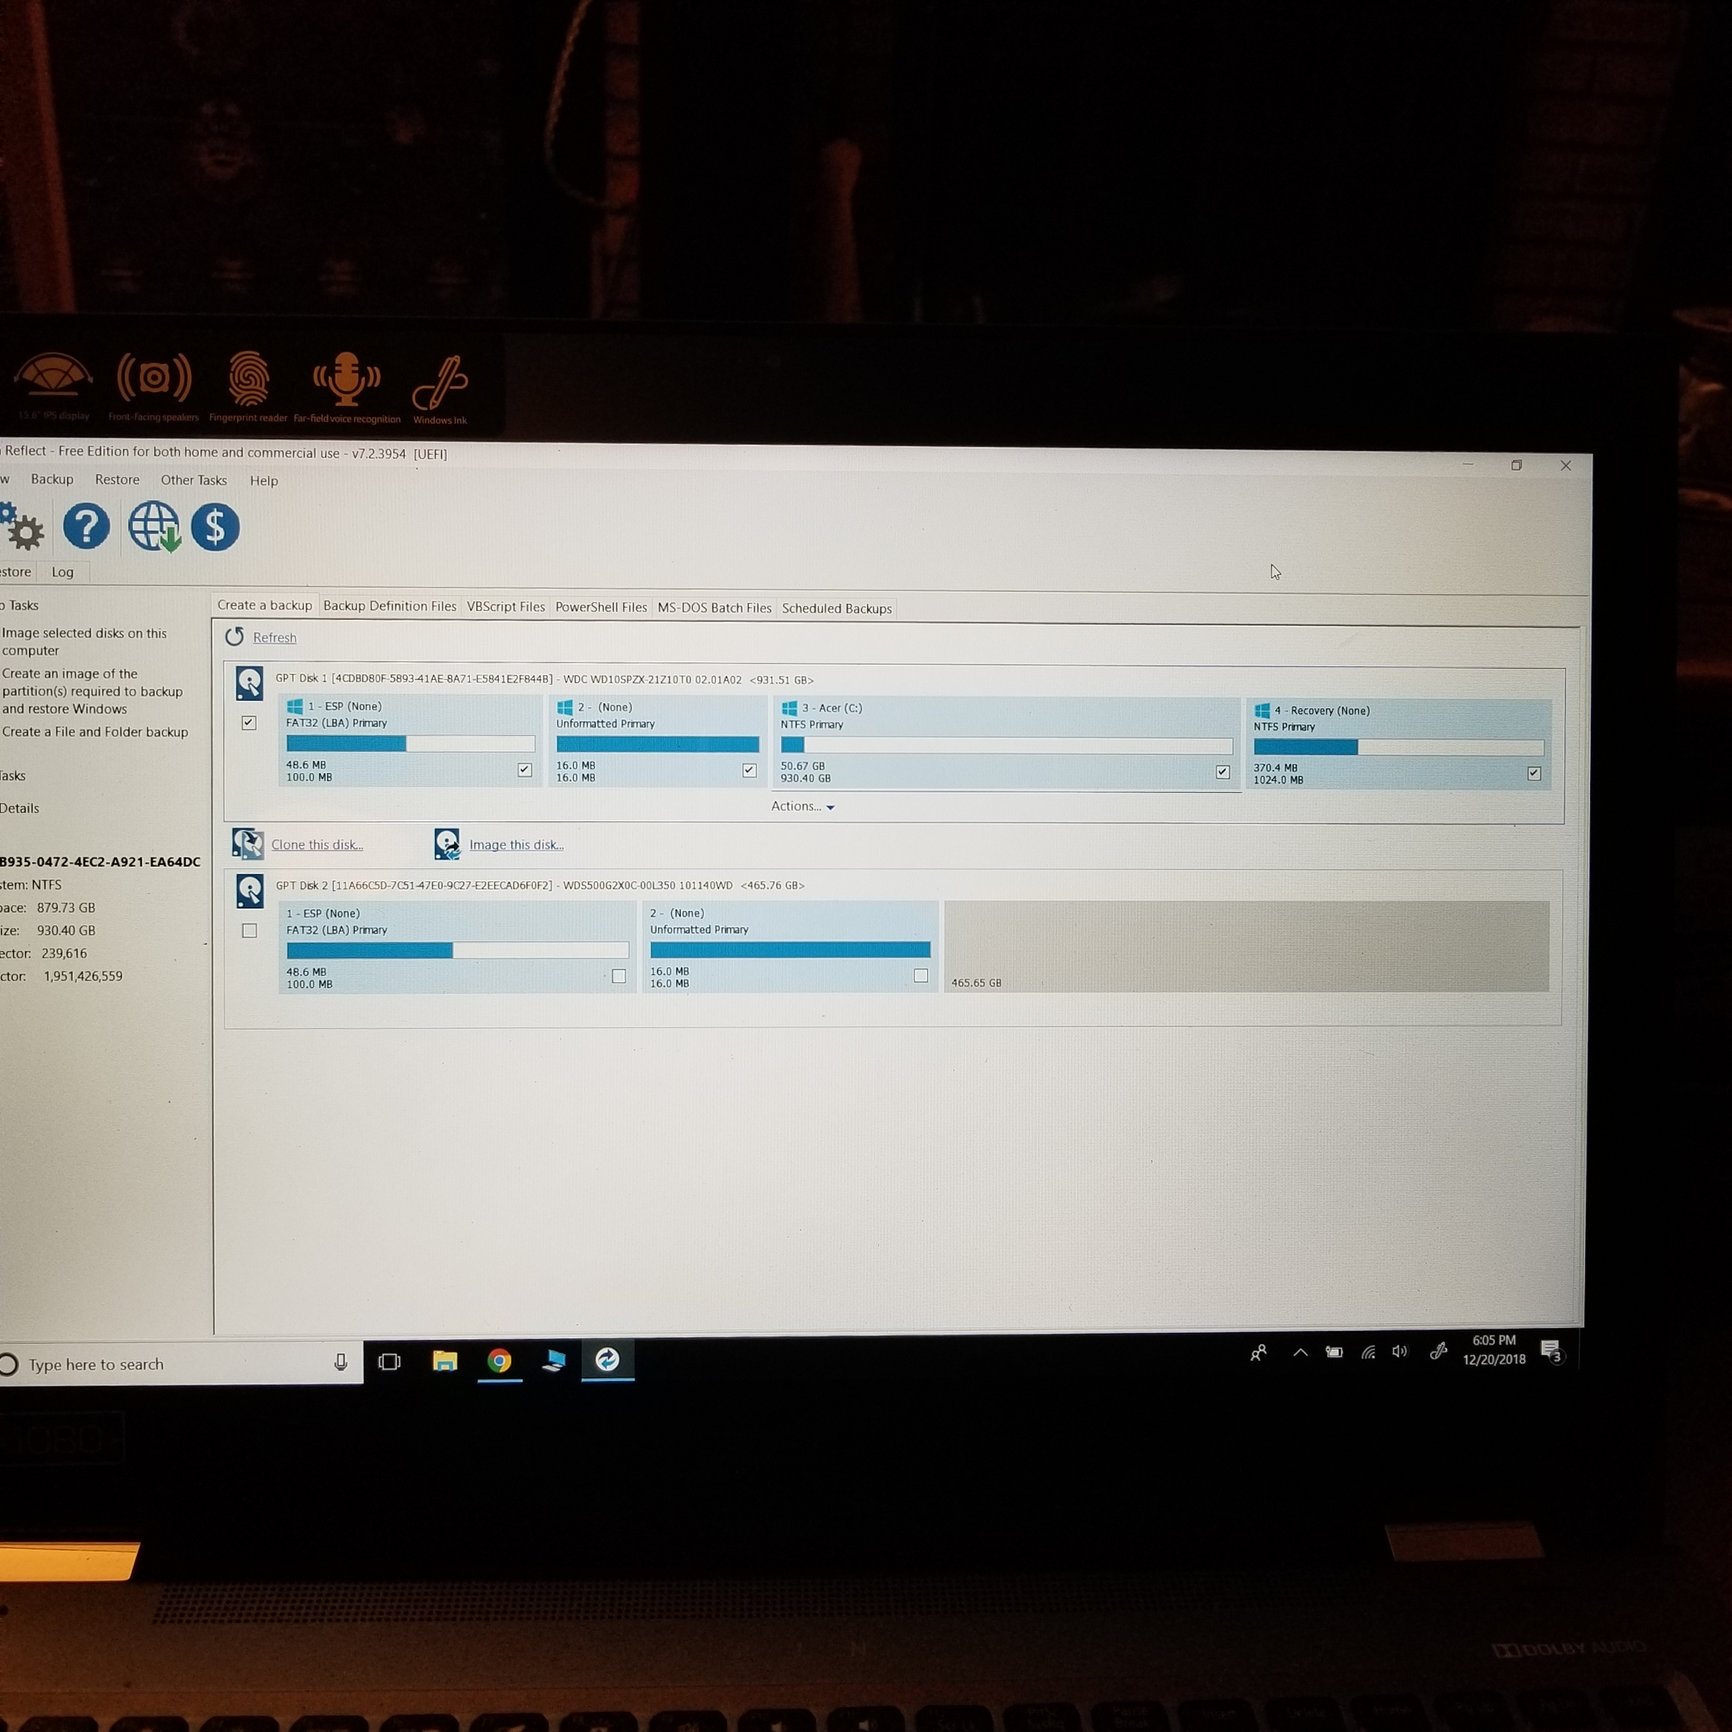 Best path to cloning OEM hard drive to a WD Black Hi-perf